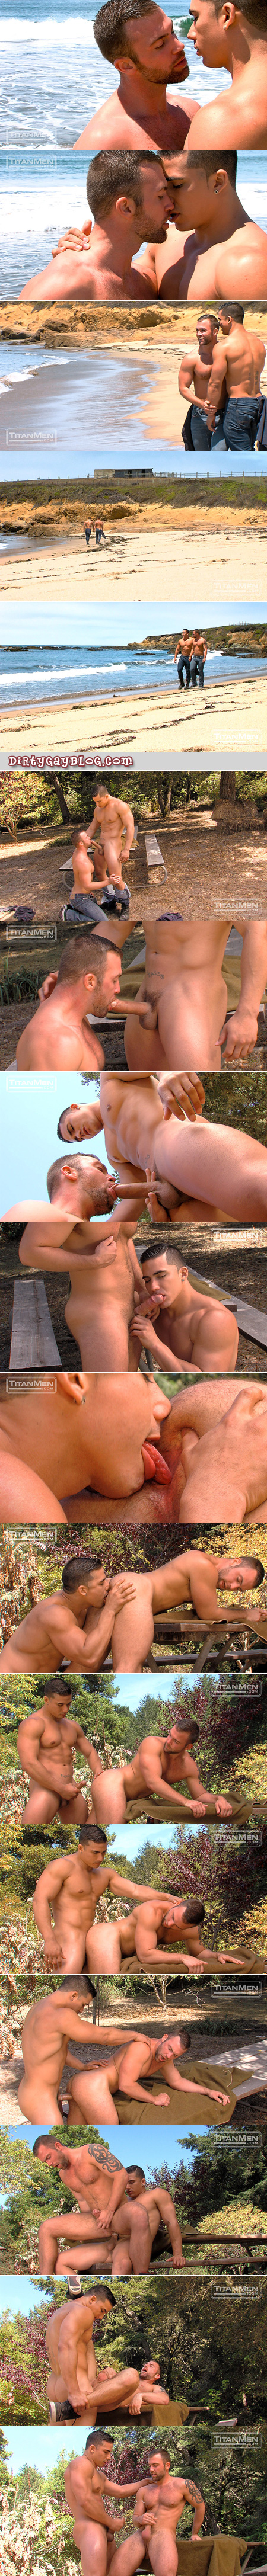 Muscle cub getting fucked in a beach campsite by a horny Italian with a thick cock.